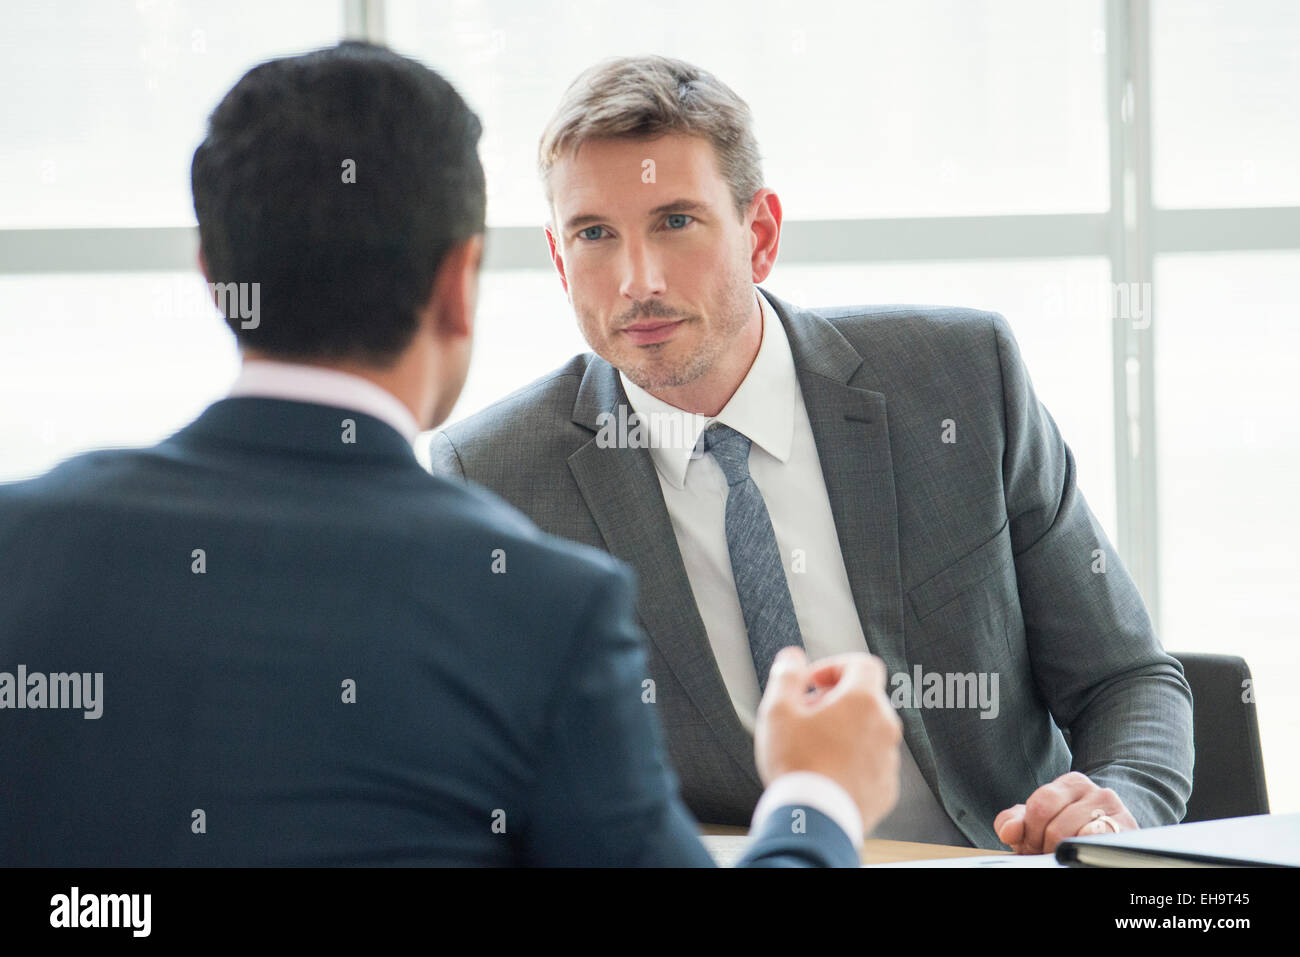 Businessmen in serious meeting - Stock Image